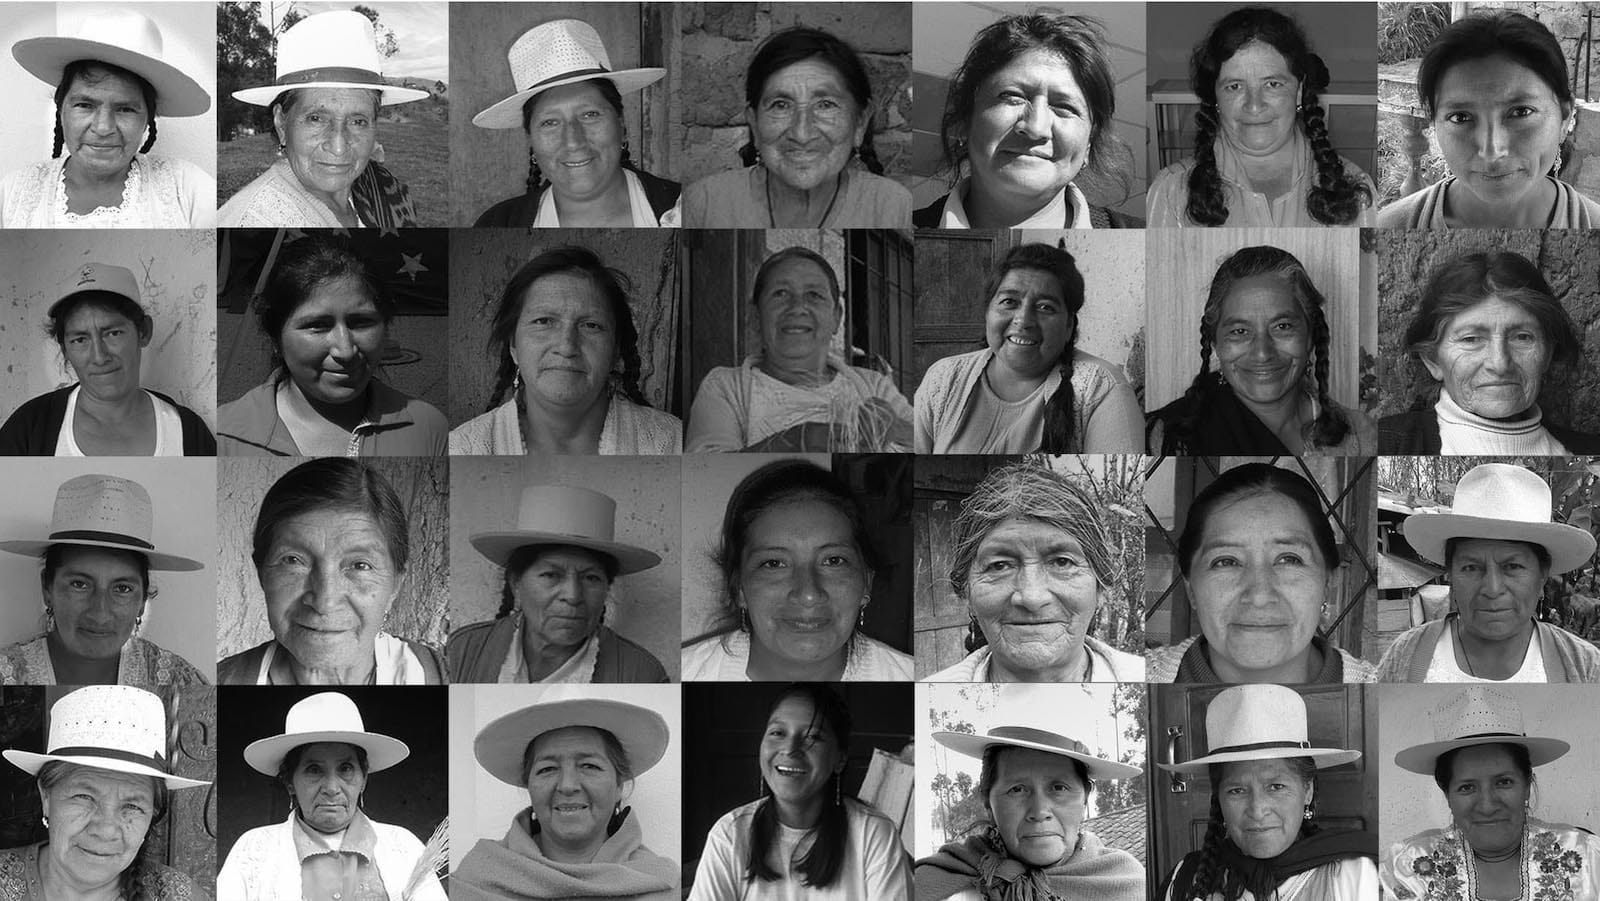 Meet_the_faces_of_Pachacuti_who_handmake_our_Panamas